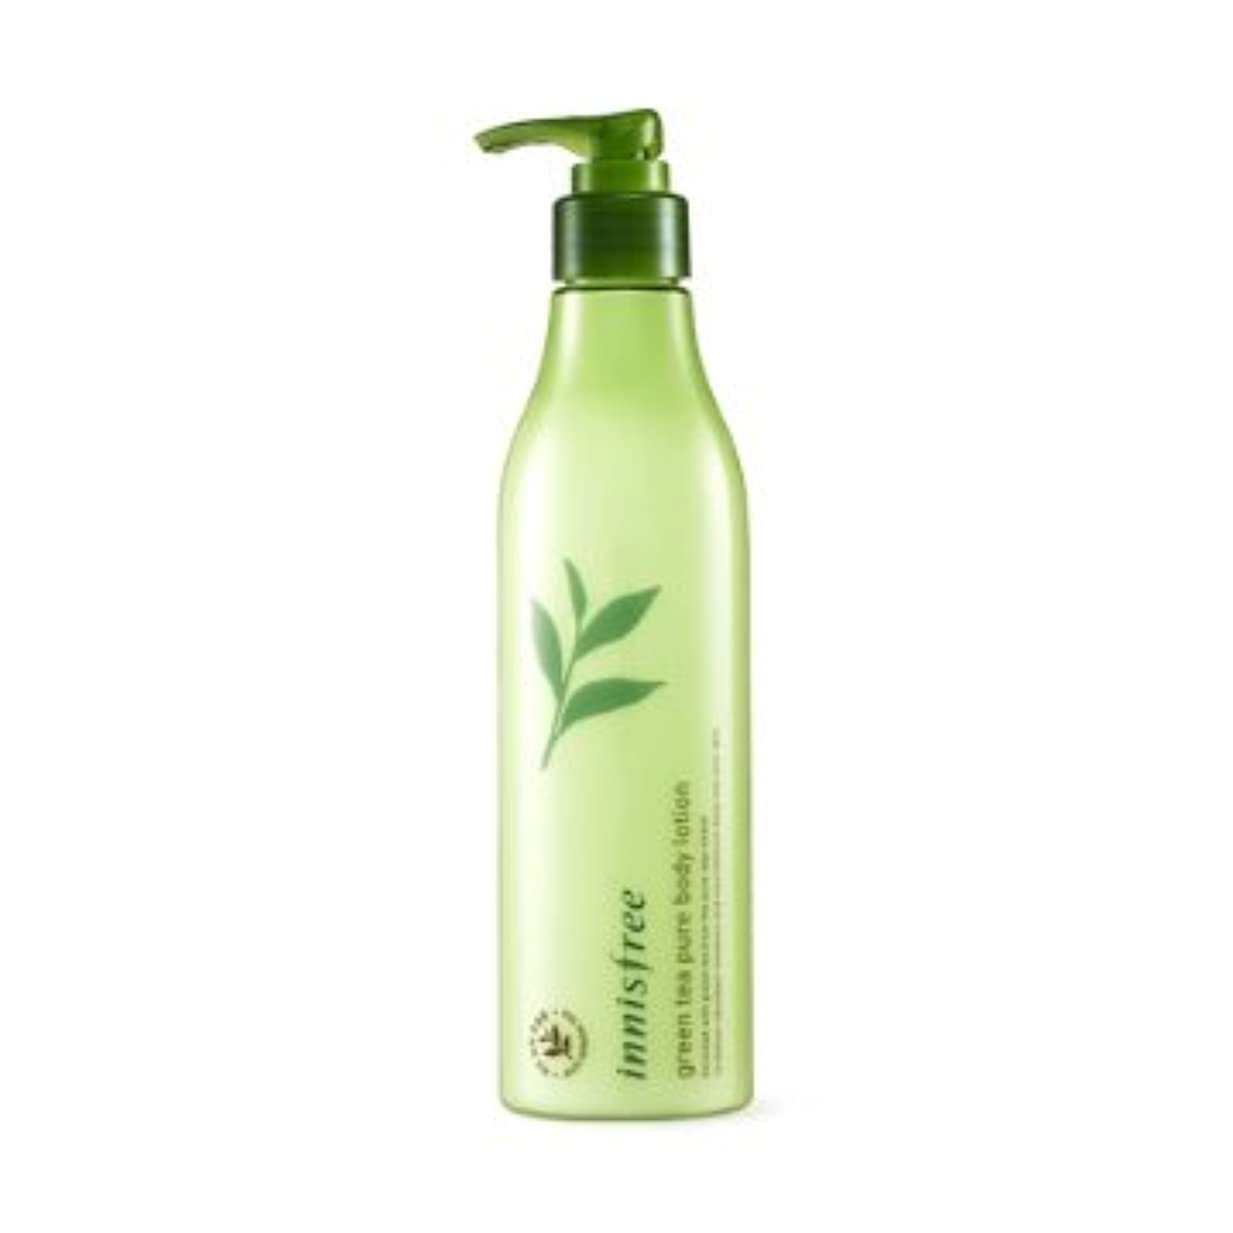 塩辛い目指す雑種【イニスフリー】Innisfree green tea pure body lotion - 300ml (韓国直送品) (SHOPPINGINSTAGRAM)